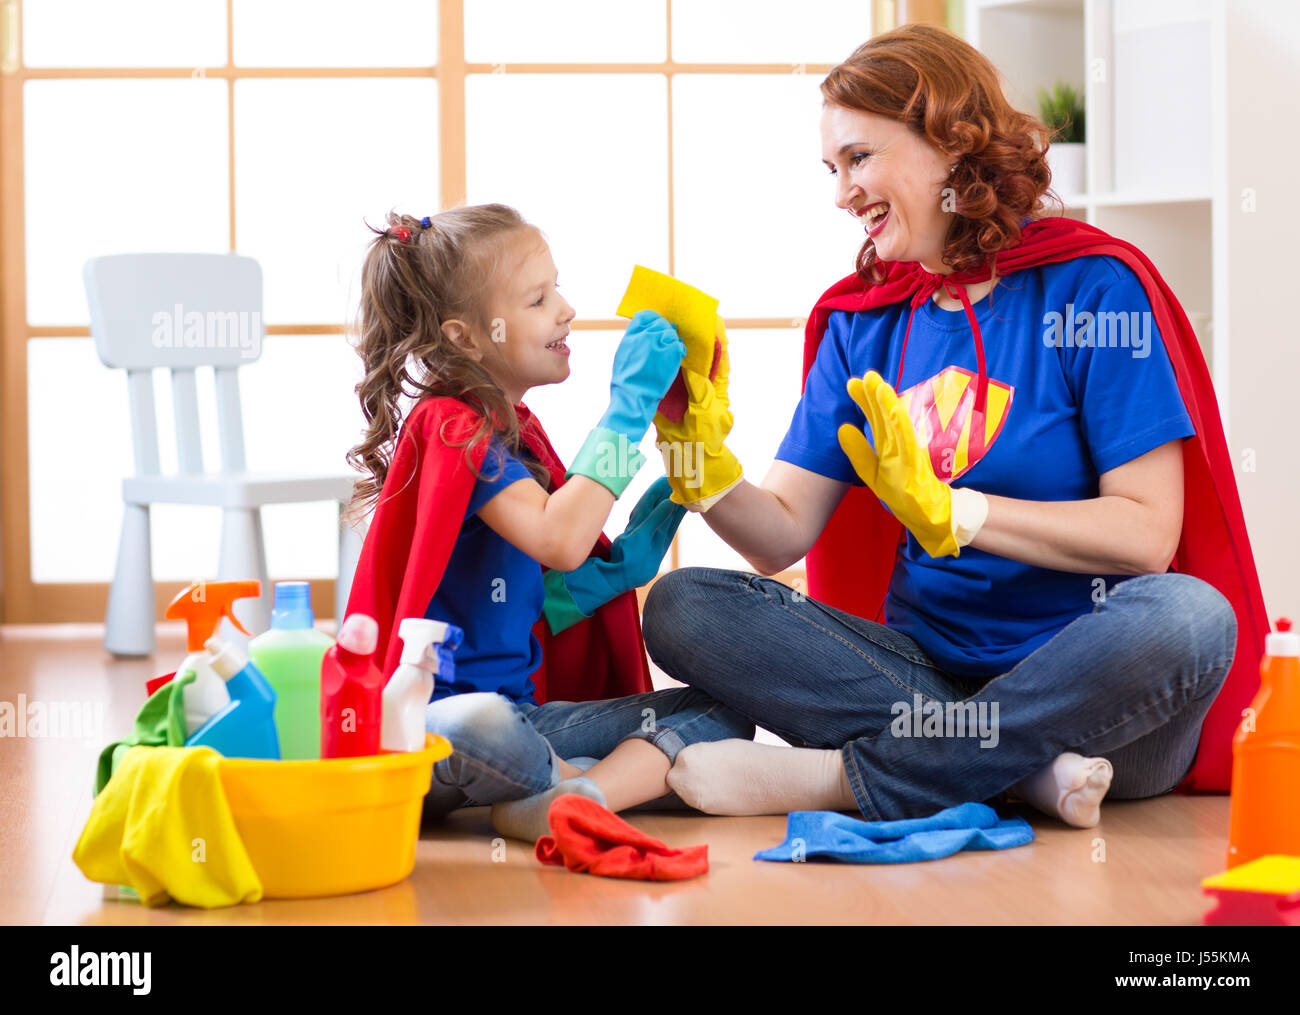 Happy woman with child cleaning room and having fun playing at home. Family housework conception. - Stock Image